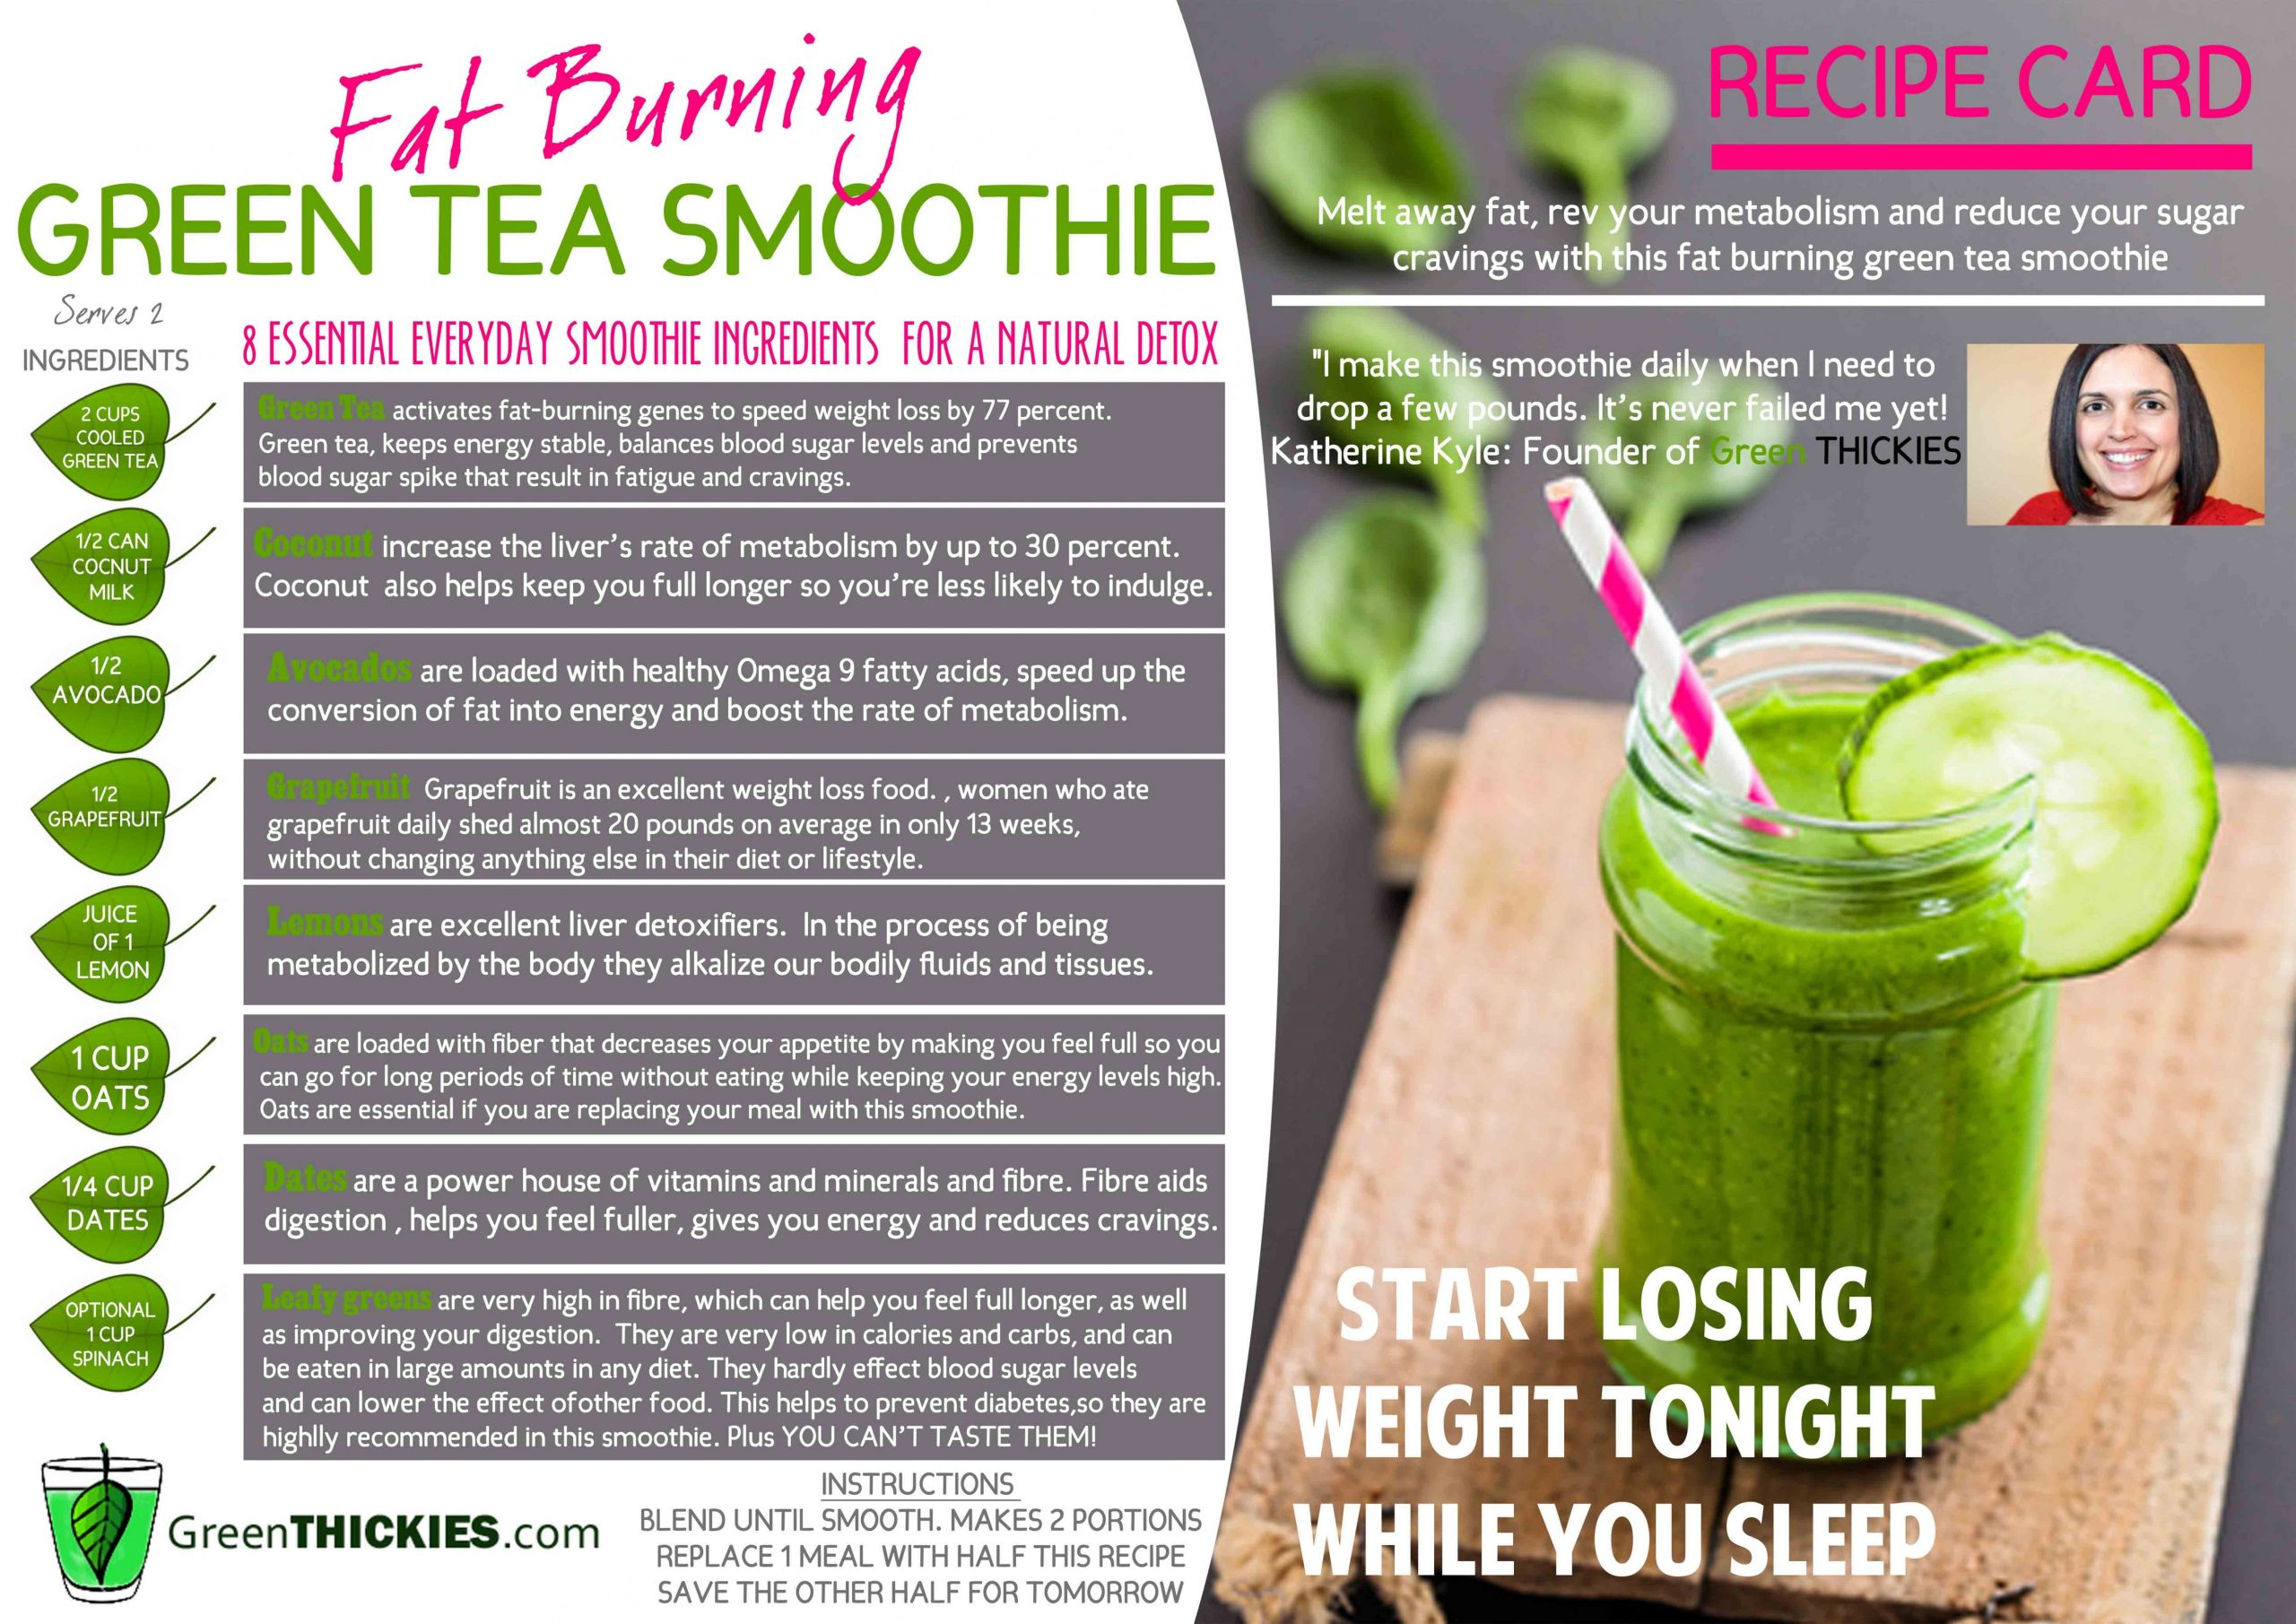 Healthy Weight Loss Smoothie Recipes Uk - Image Of Food Recipe - Smoothie Recipes For Weight Loss Uk